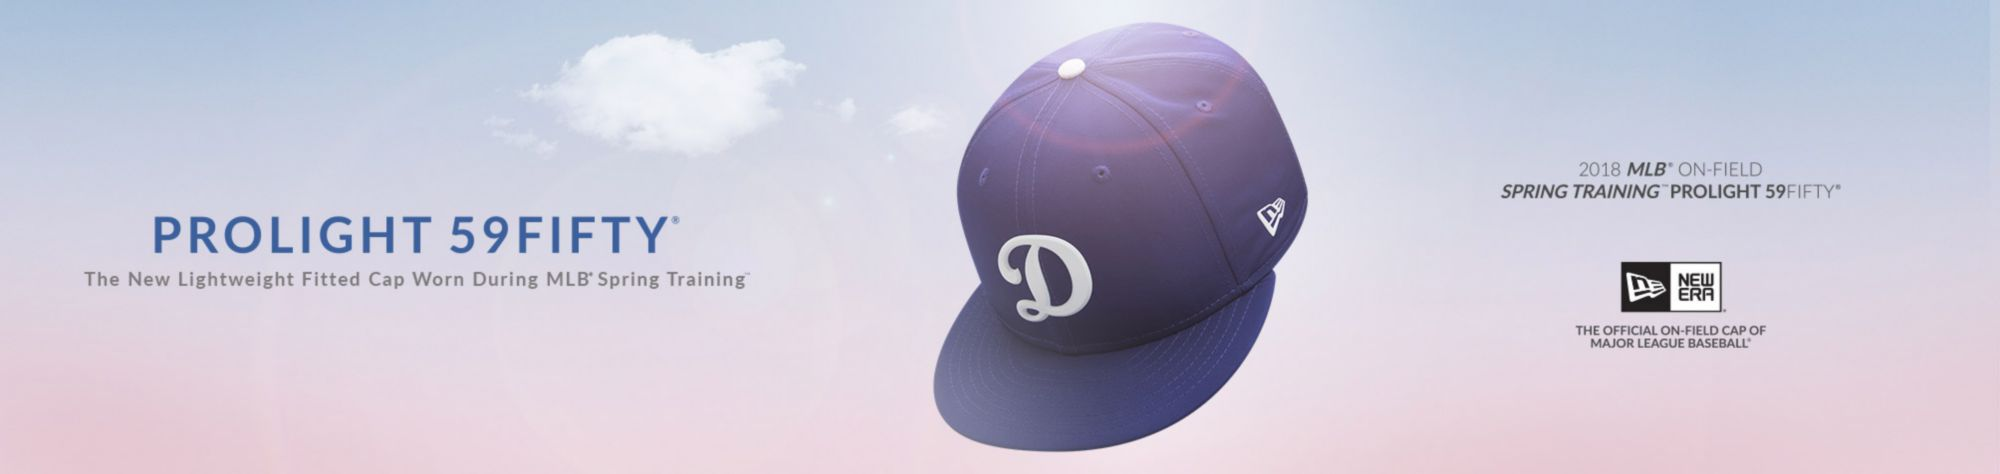 PROLIGHT 59FIFTY - The new lightweight fitted cap worn during MLB spring training - Los Angeles Dodgers - Shop Now